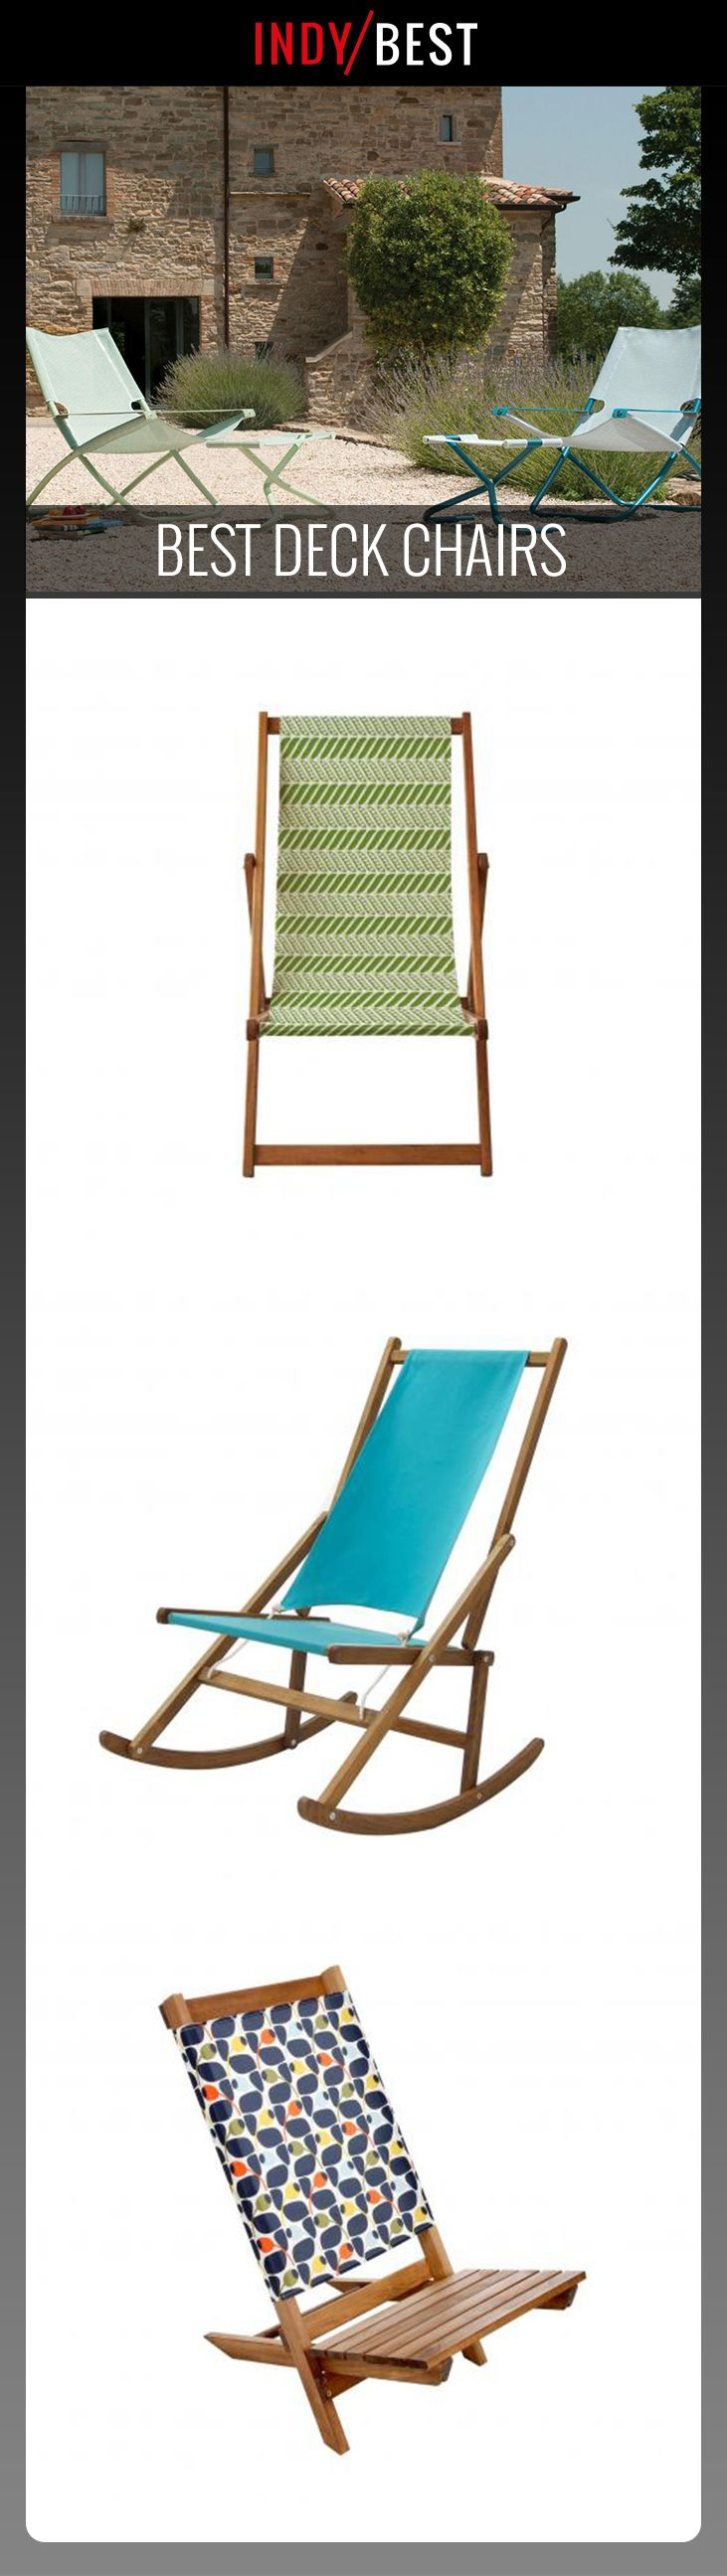 Whether you're on the beach or in the back garden, recline in style with a tried-and-tested deck chair: http://ind.pn/2sXcIDX